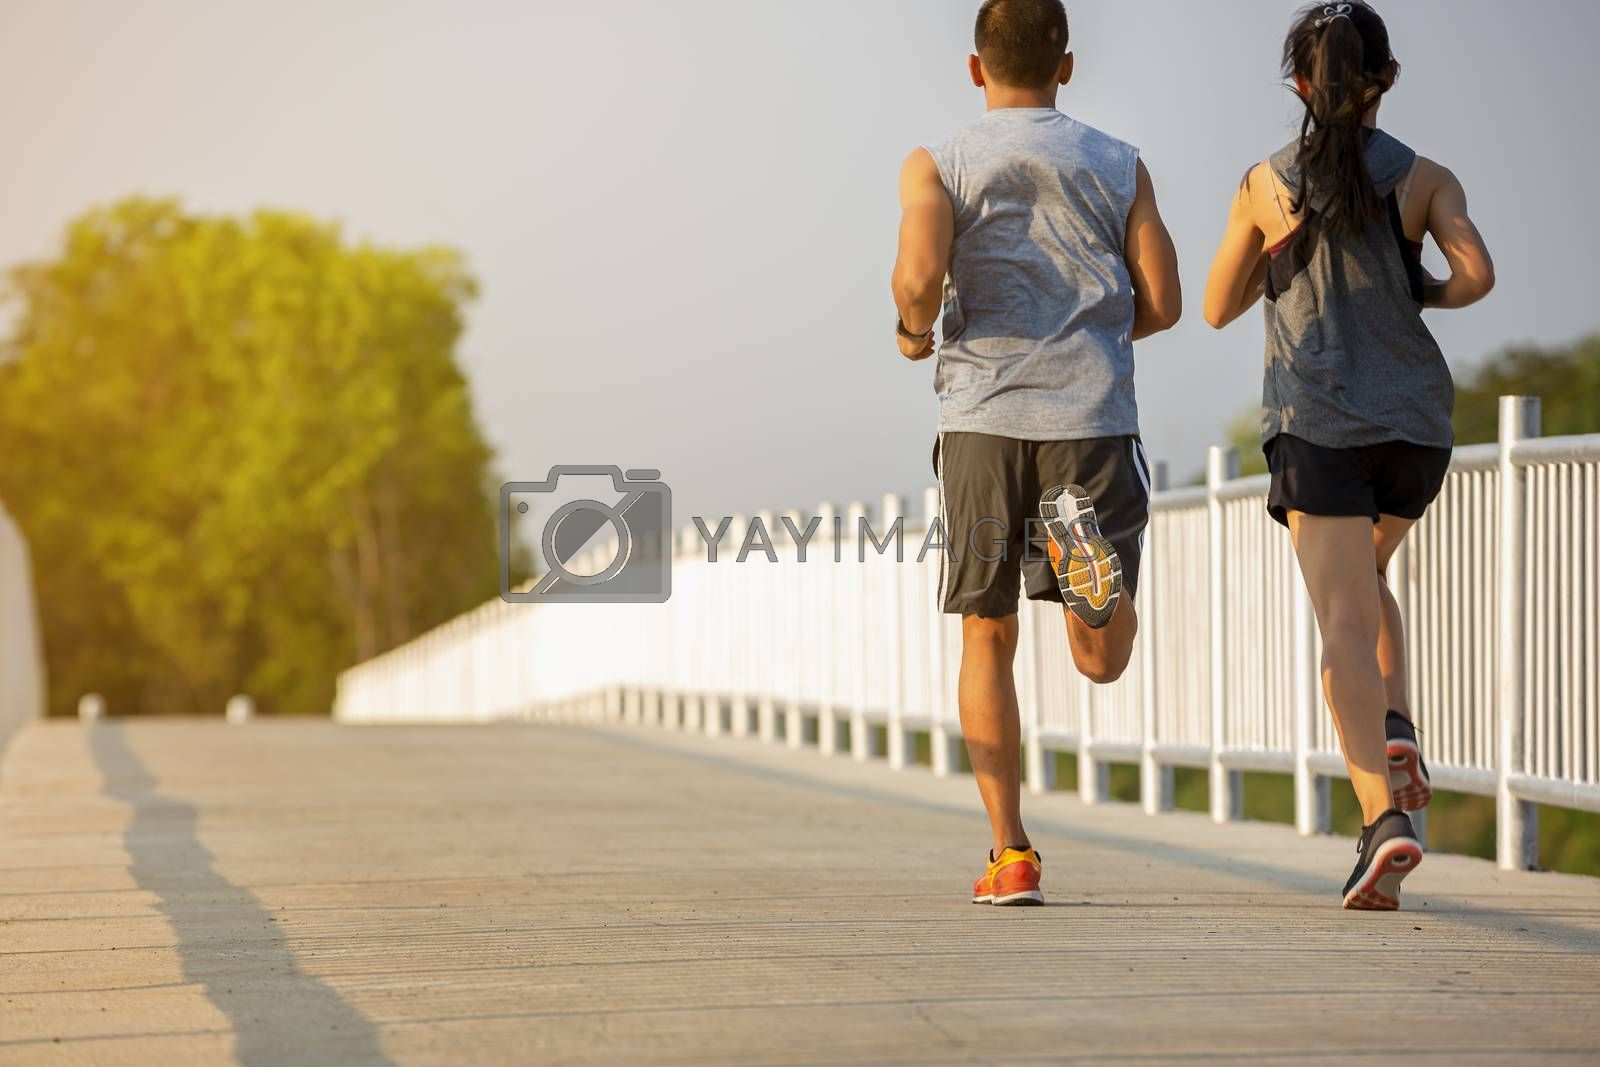 Silhouette of a couple running and exercising at sunset with the sun in the background, colorful sunset sky